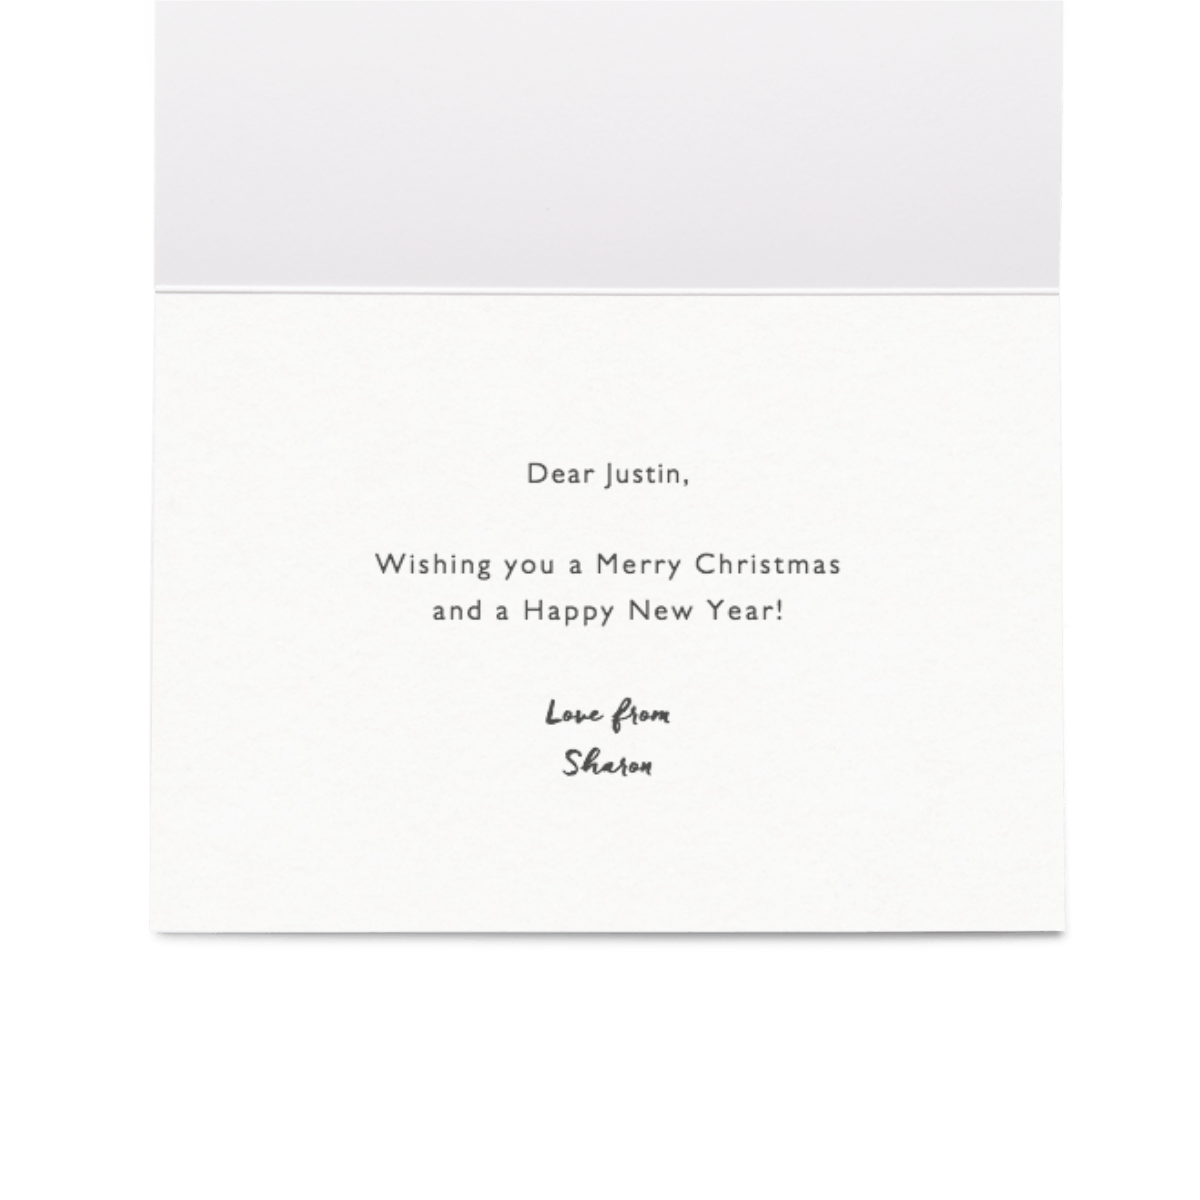 Https%3a%2f%2fwww.papier.com%2fproduct image%2f11680%2f20%2fchristmas convertible 2962 inside 1542376230.png?ixlib=rb 1.1